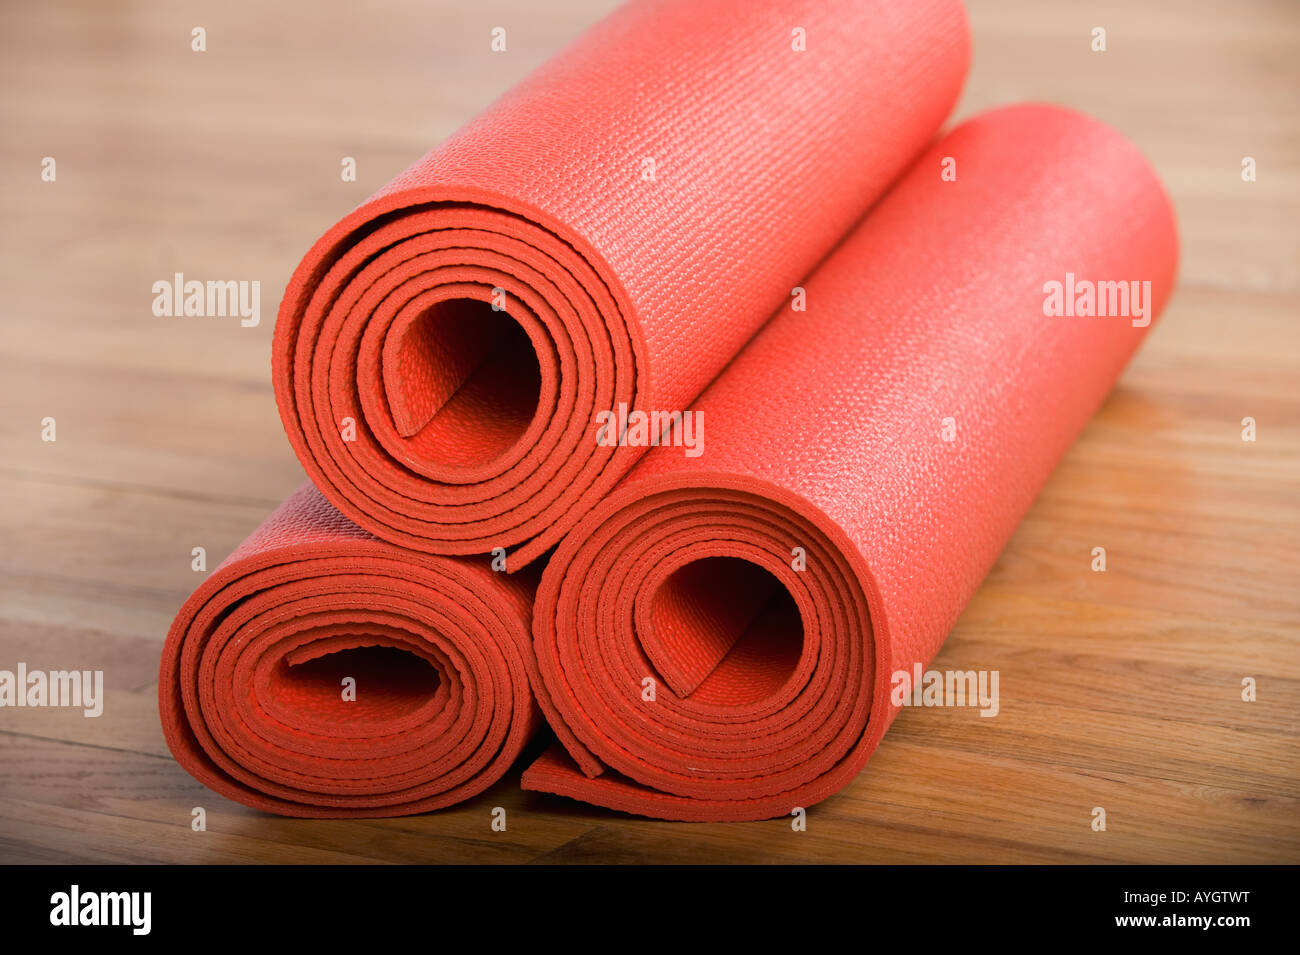 Stack of rolled yoga mats - Stock Image